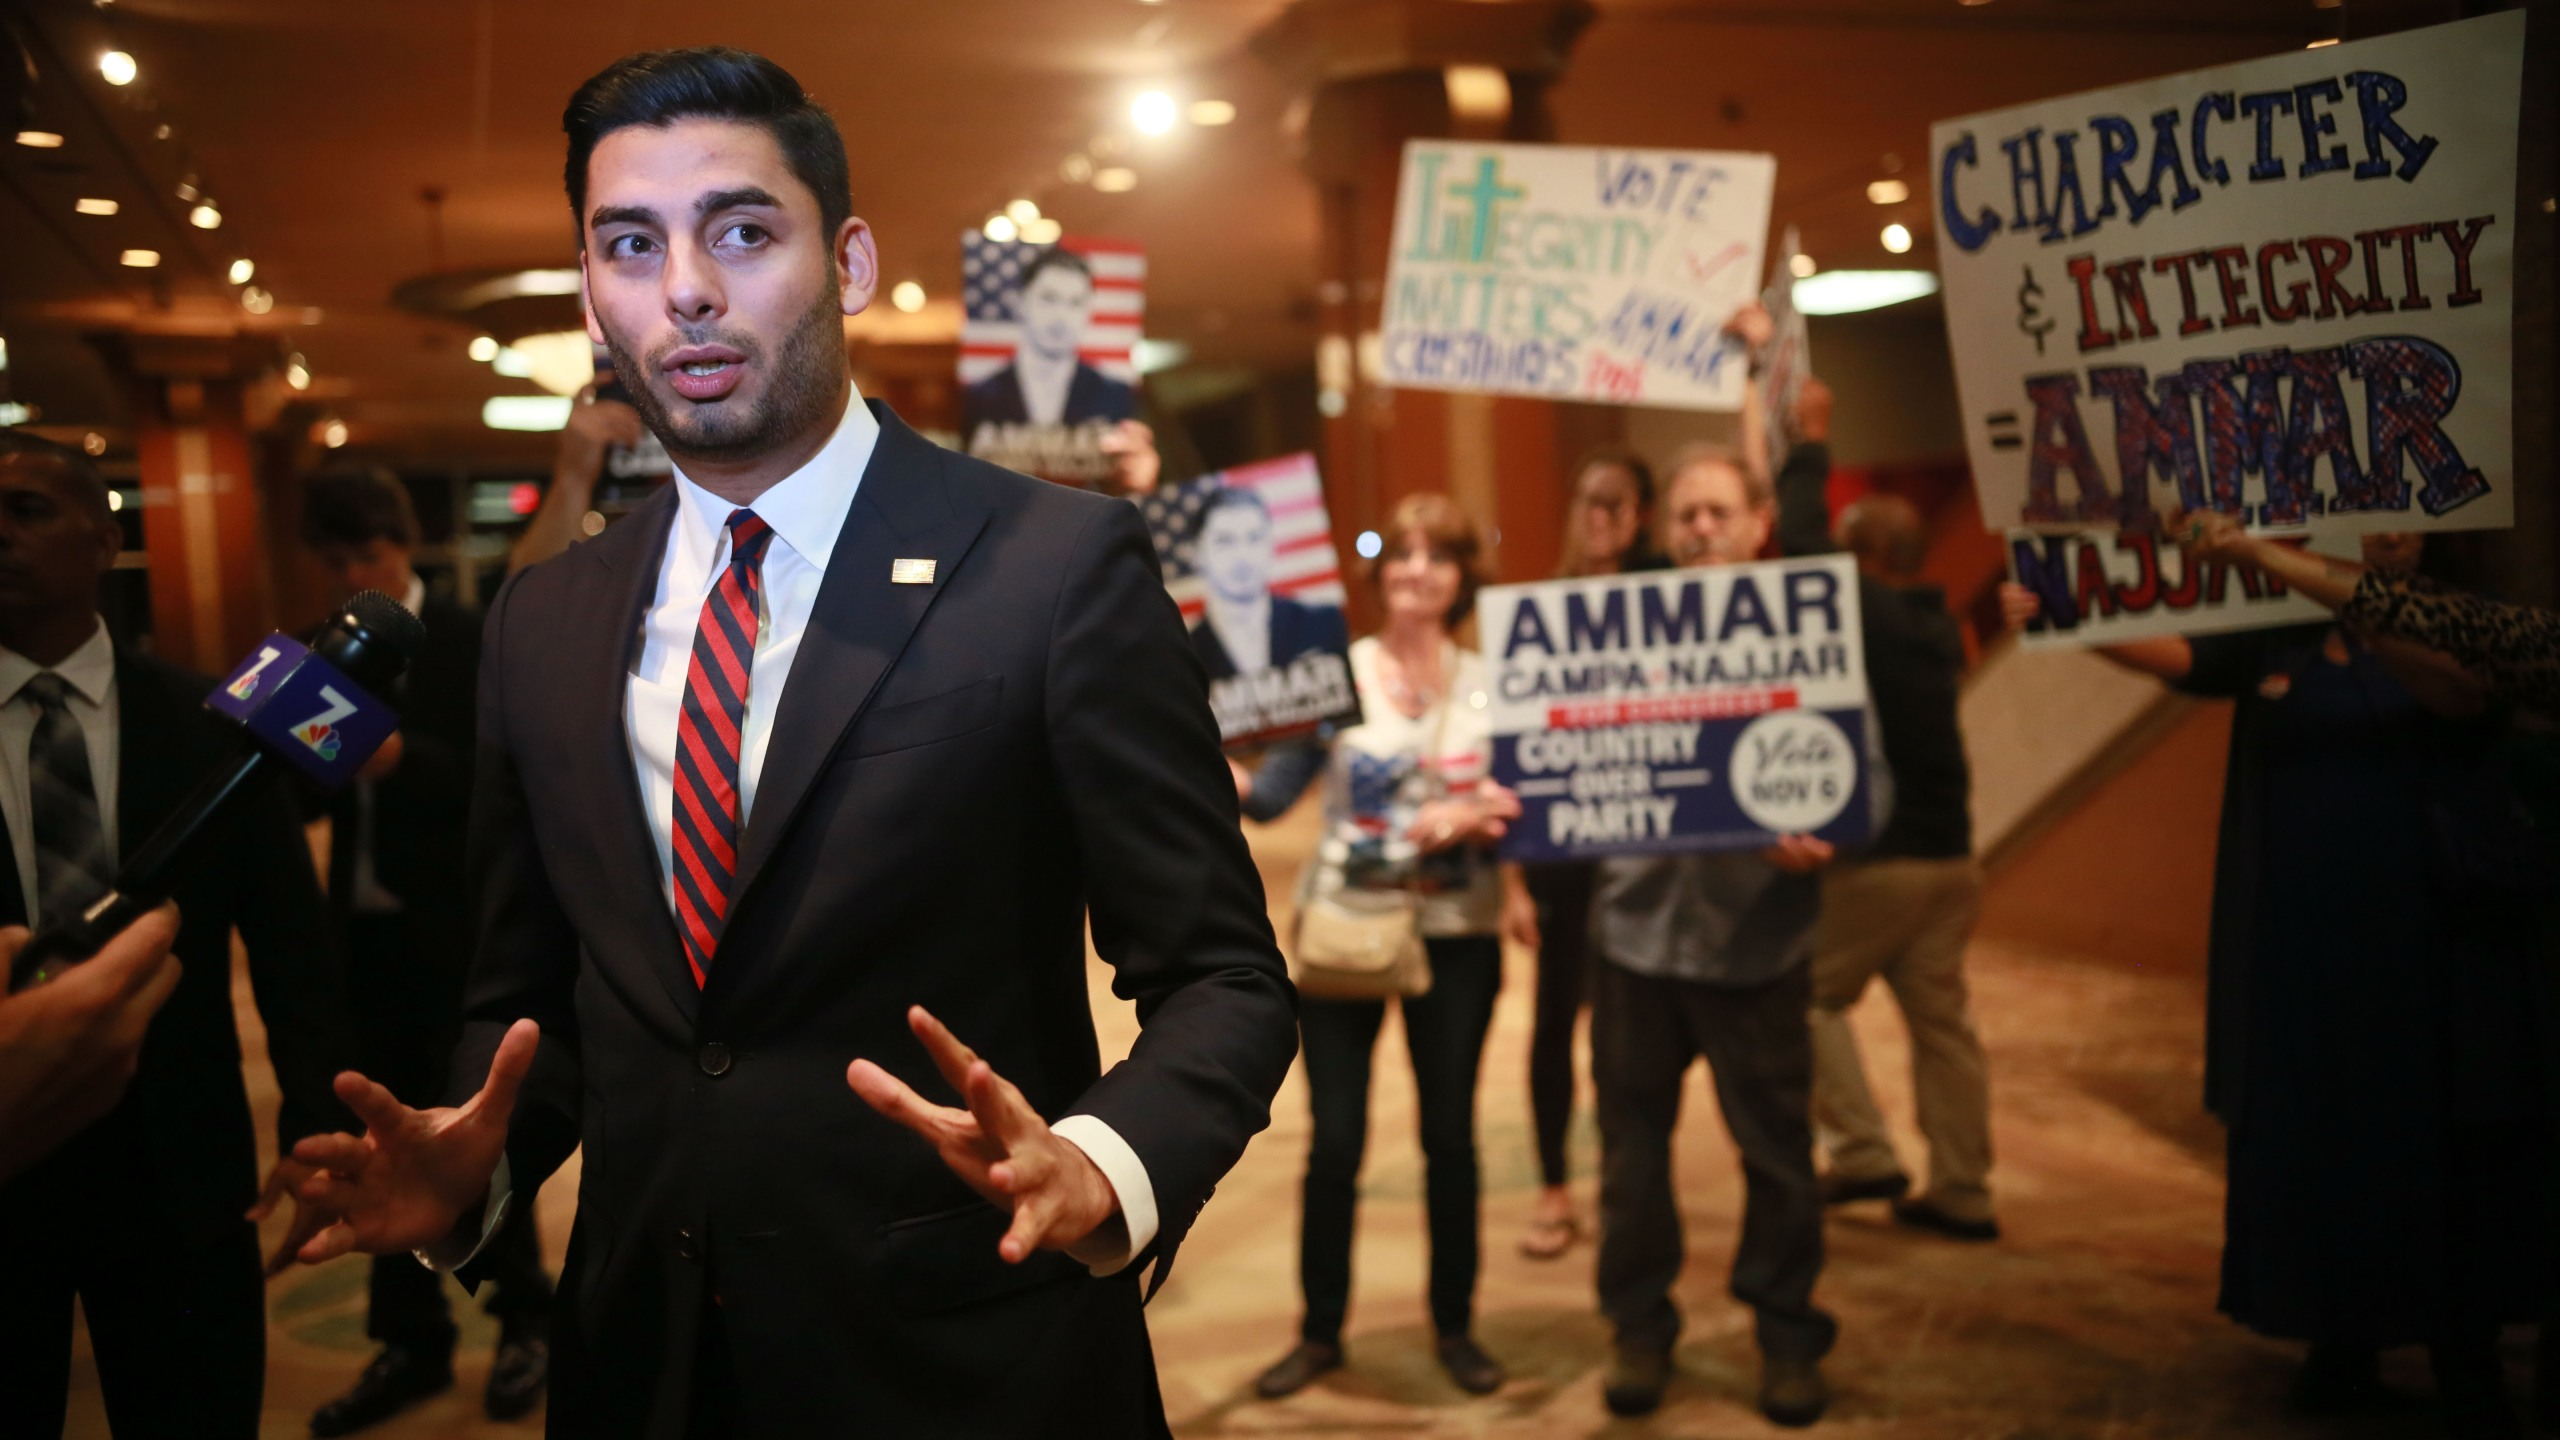 Ammar Campa-Najjar is seen with supporters in San Diego on Nov. 6, 2018. (Credit: Sandy Huffaker / Getty Images)